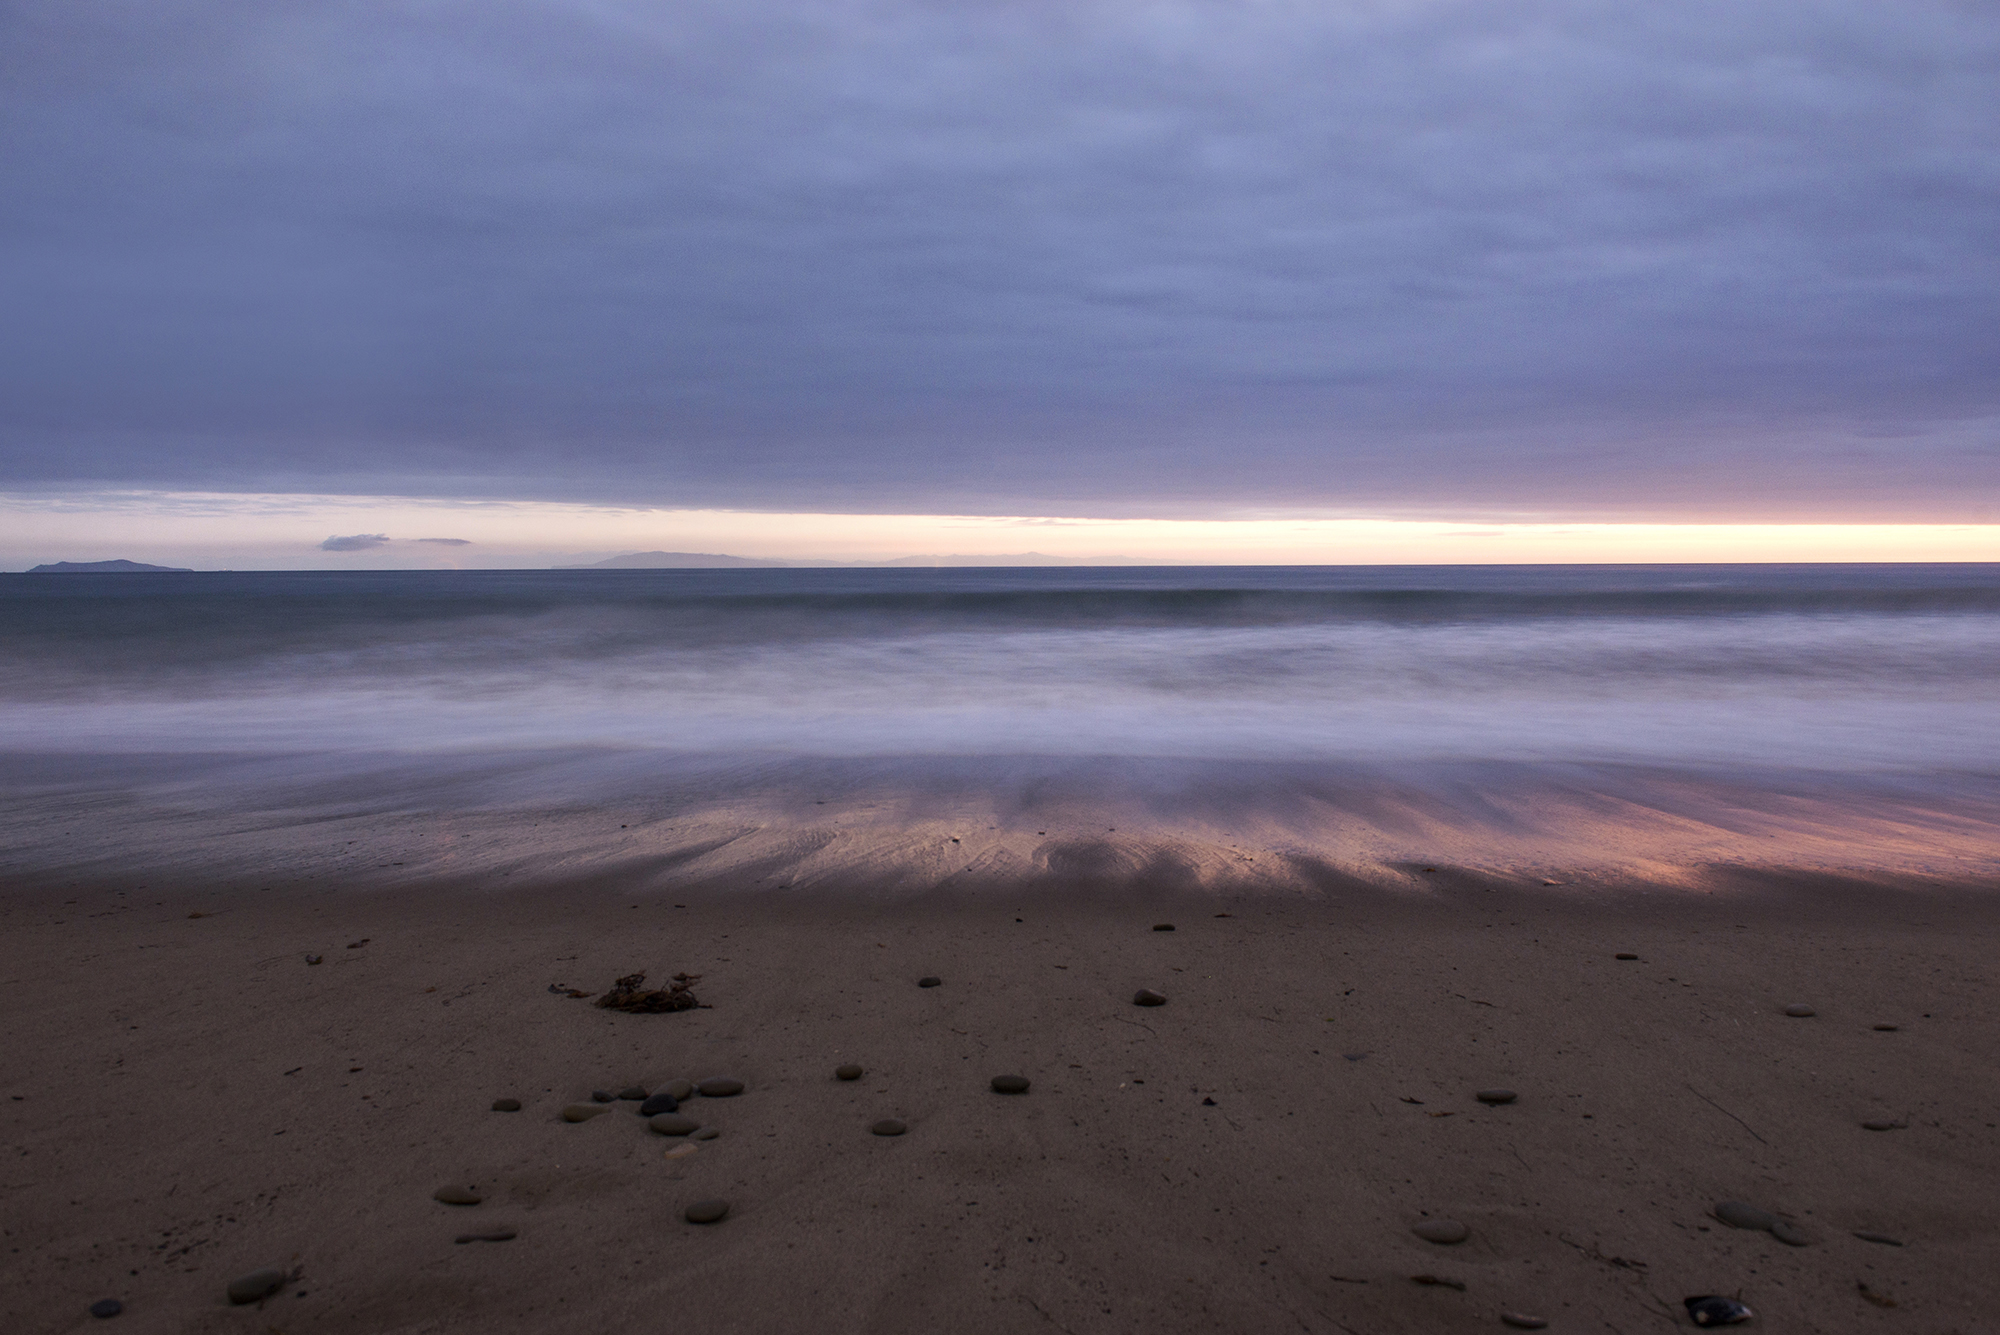 This one was a 10-second exposure at dusk.